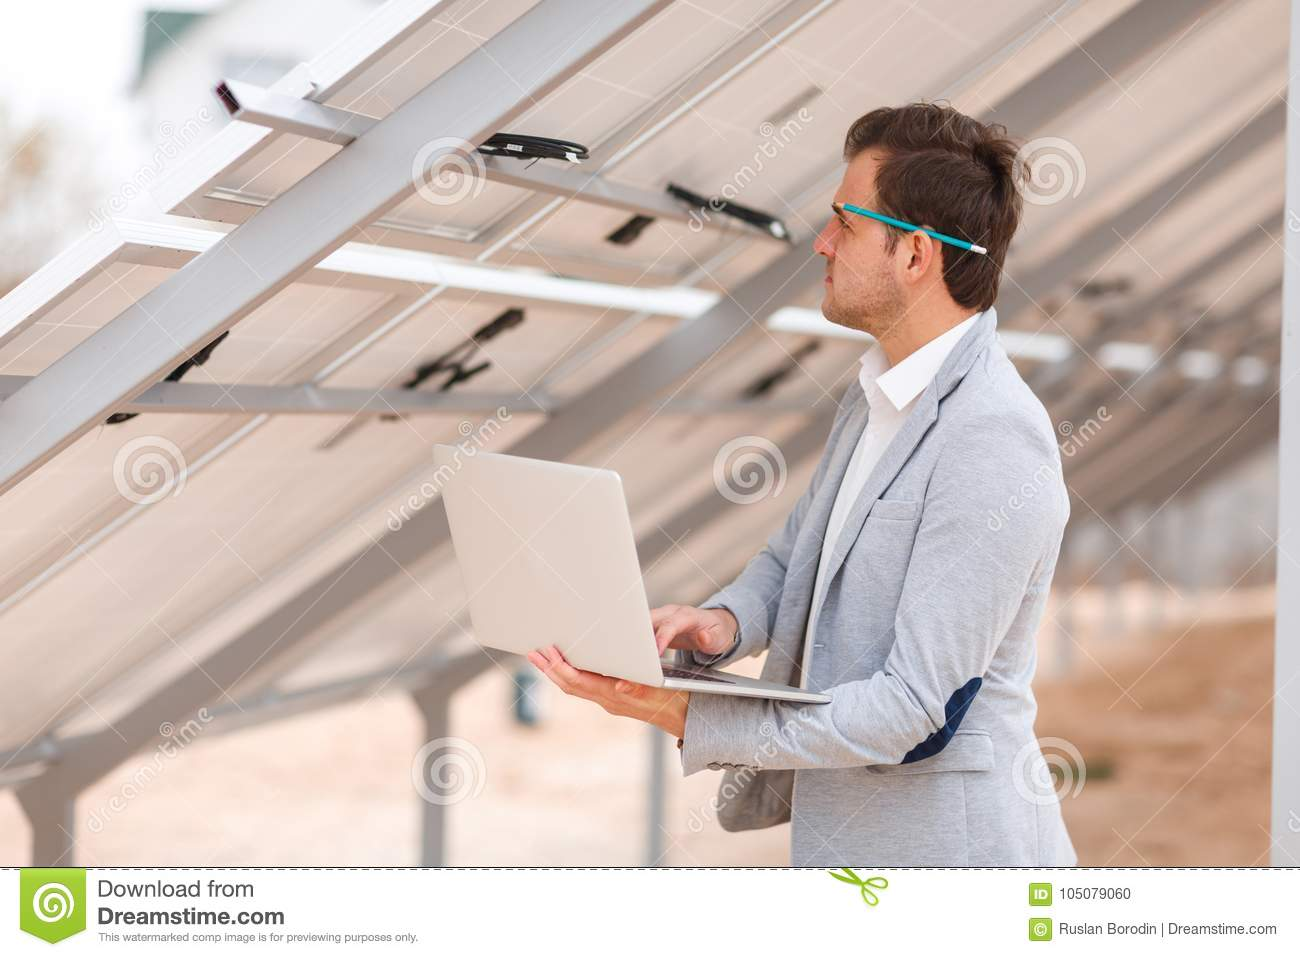 A Man With Pencil Behind His Ear Holds Laptop And Looks At The Wiring Harness Installed Solid In Suit Modern Hands For Solar Panels On